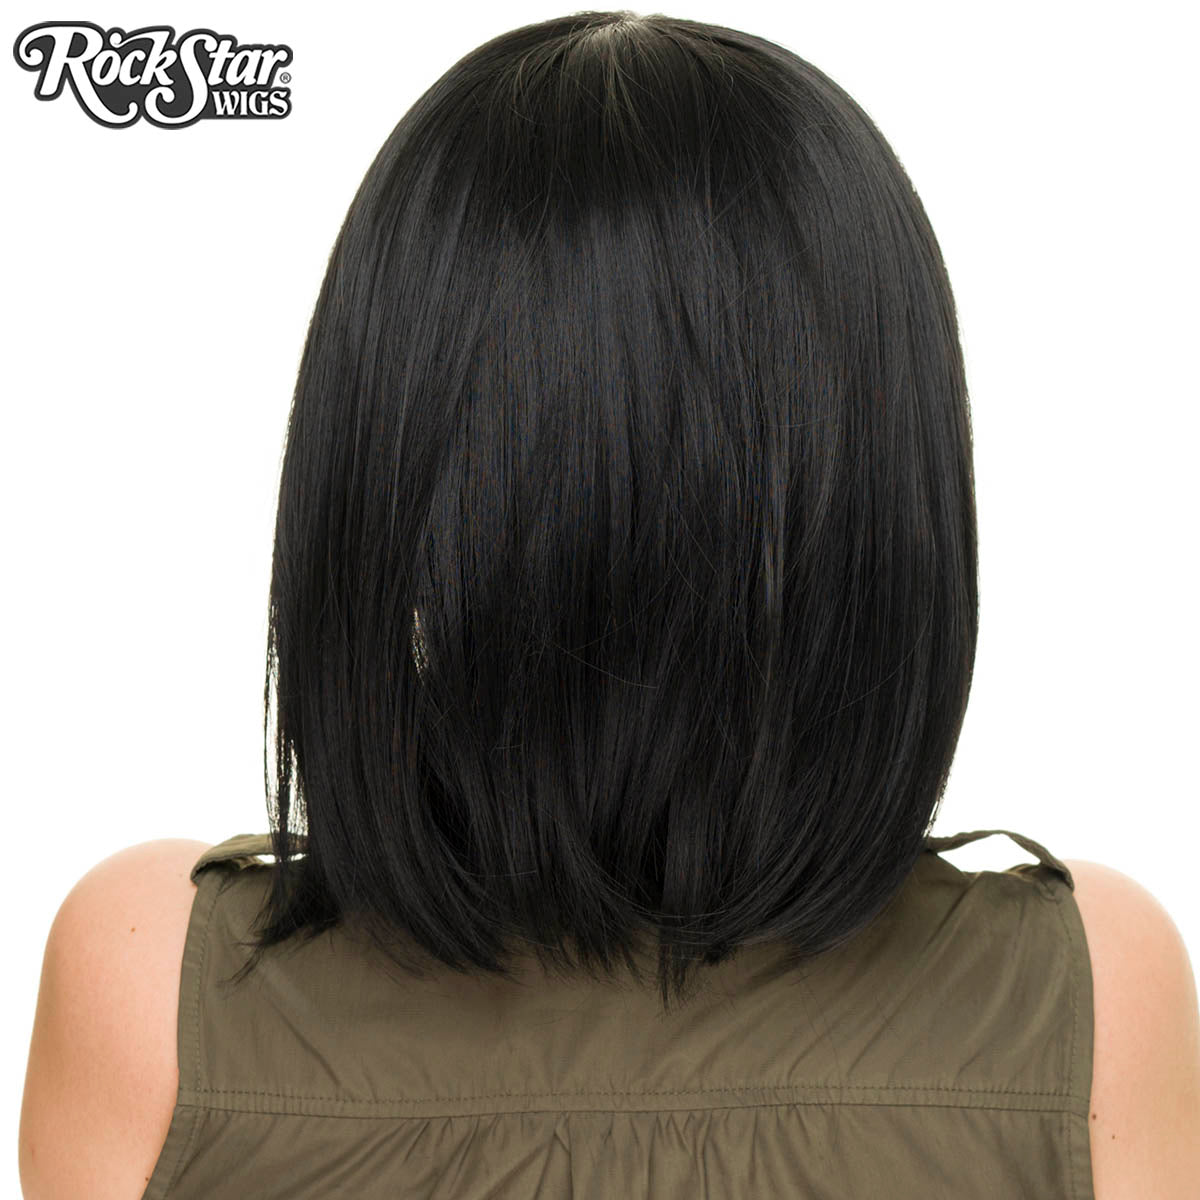 New Cosplay - Straight Bob - Black 00842